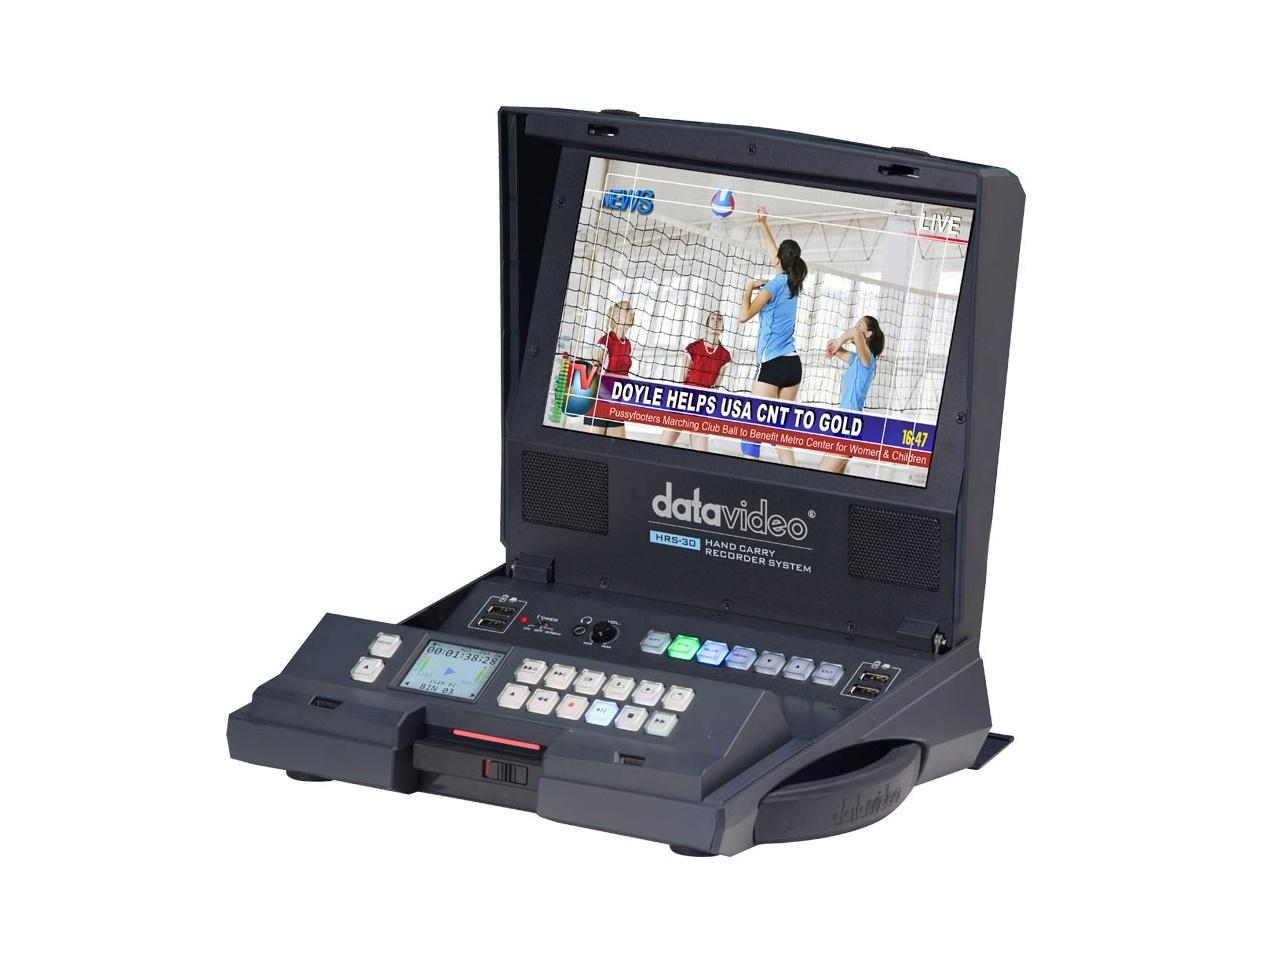 Datavideo HRS-30 HD/SD Hand Carry Recorder System